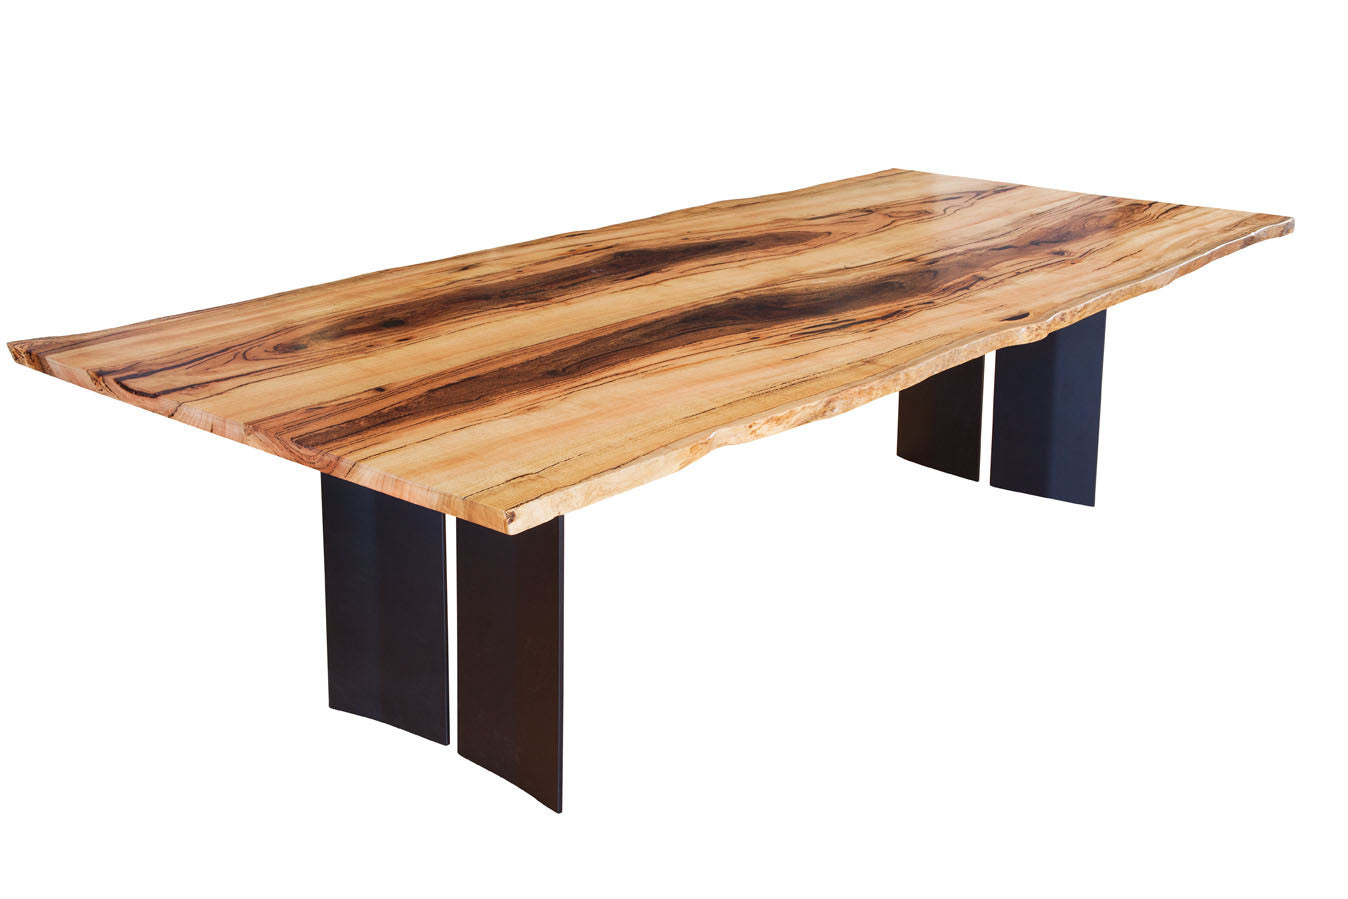 ... Blackwood Natural Edge Marri Dining Table With Steel Refectory Base,  Nedlands, Perth, WA ...